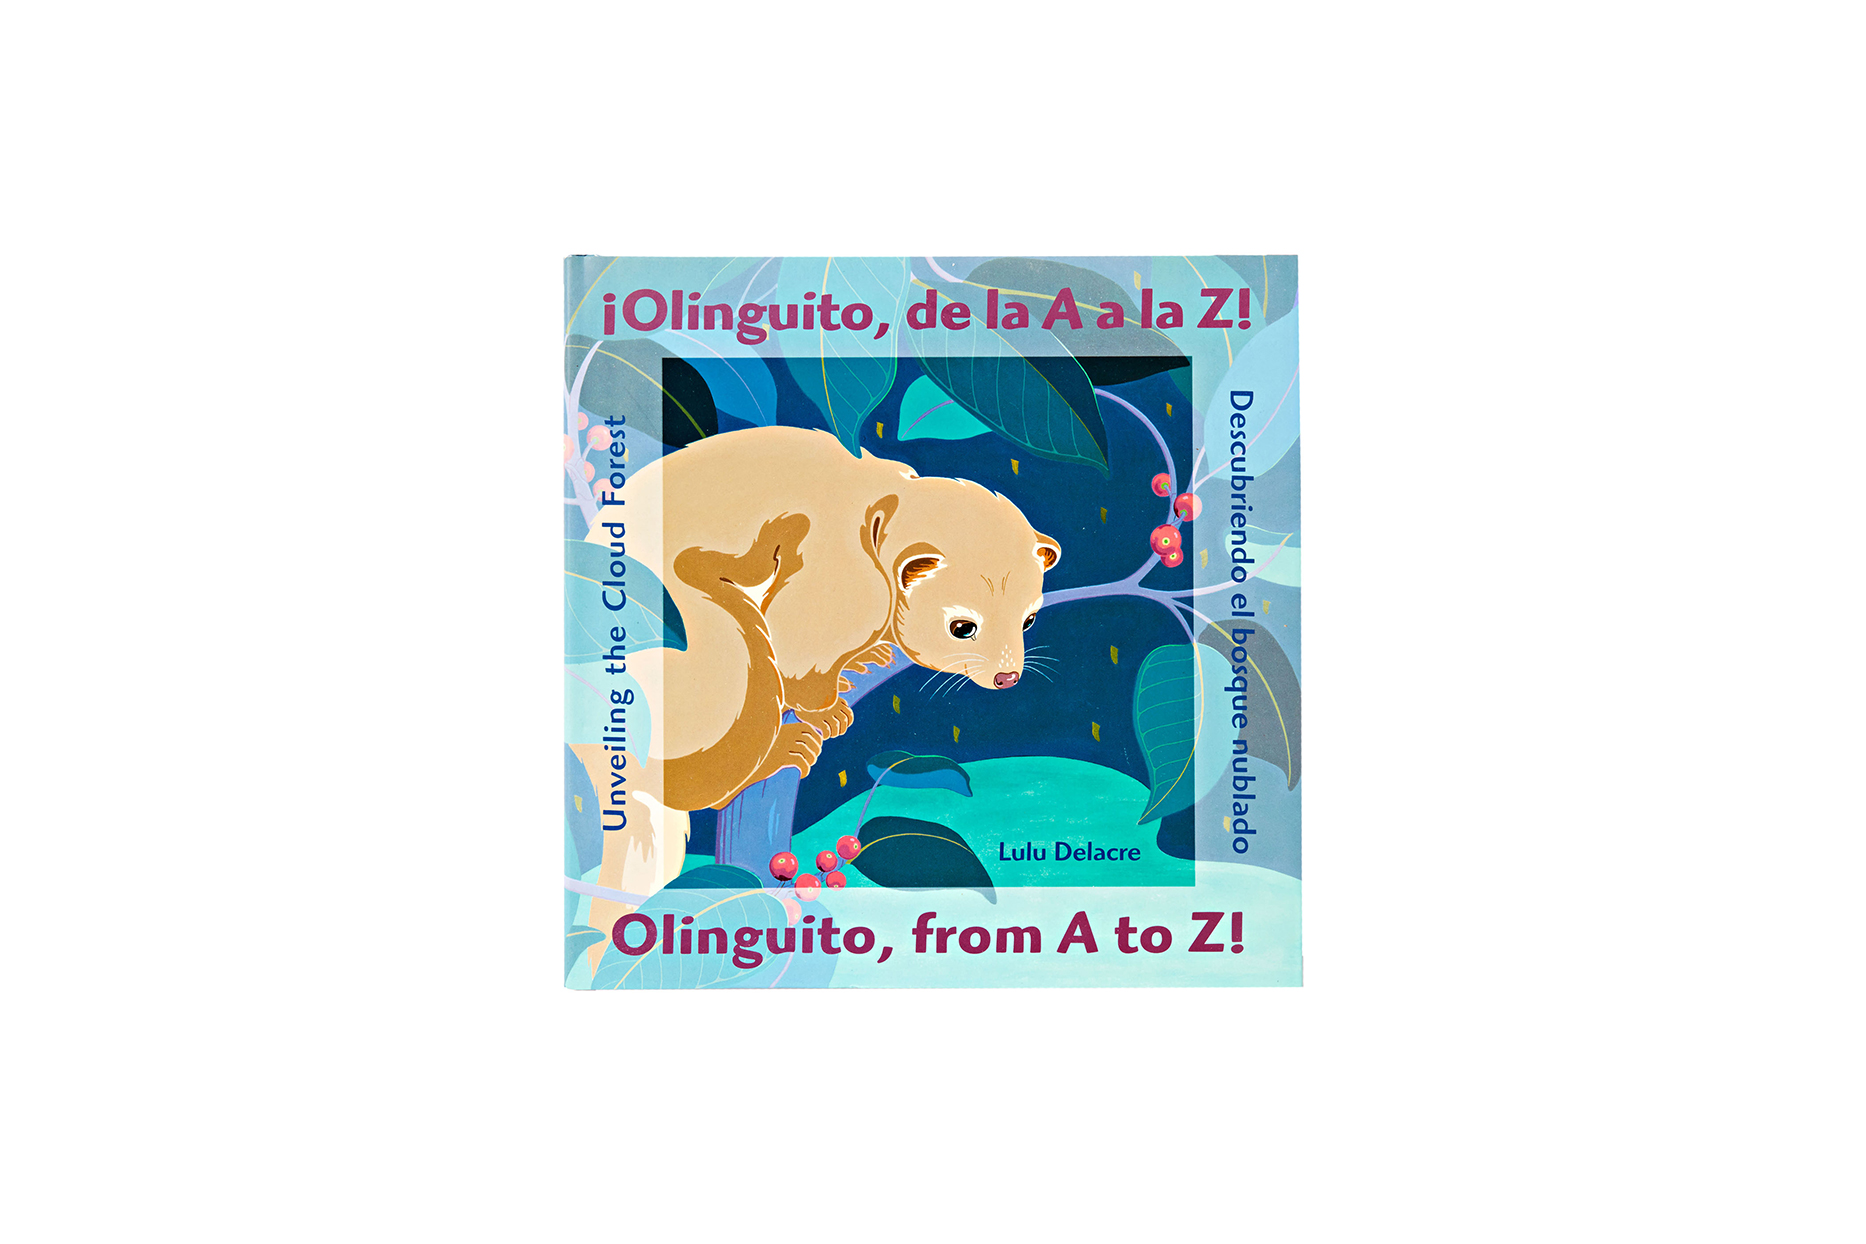 ¡Olinguito, from A to Z!